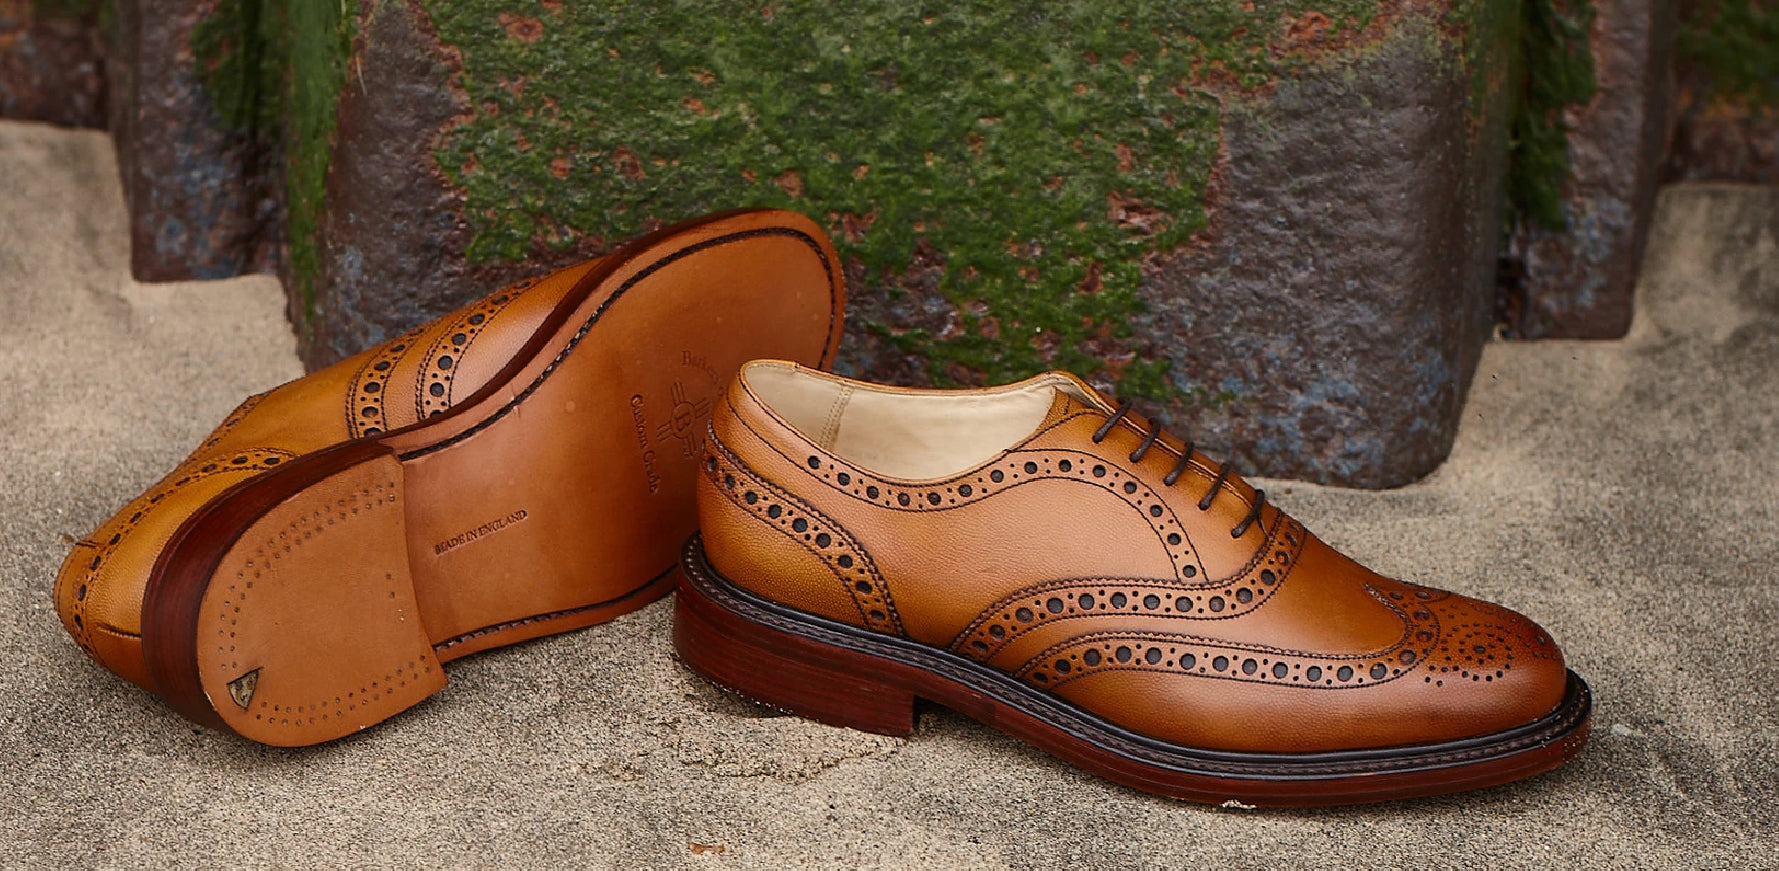 Charles - Men's Handmade Leather Brogue Shoes By Barker